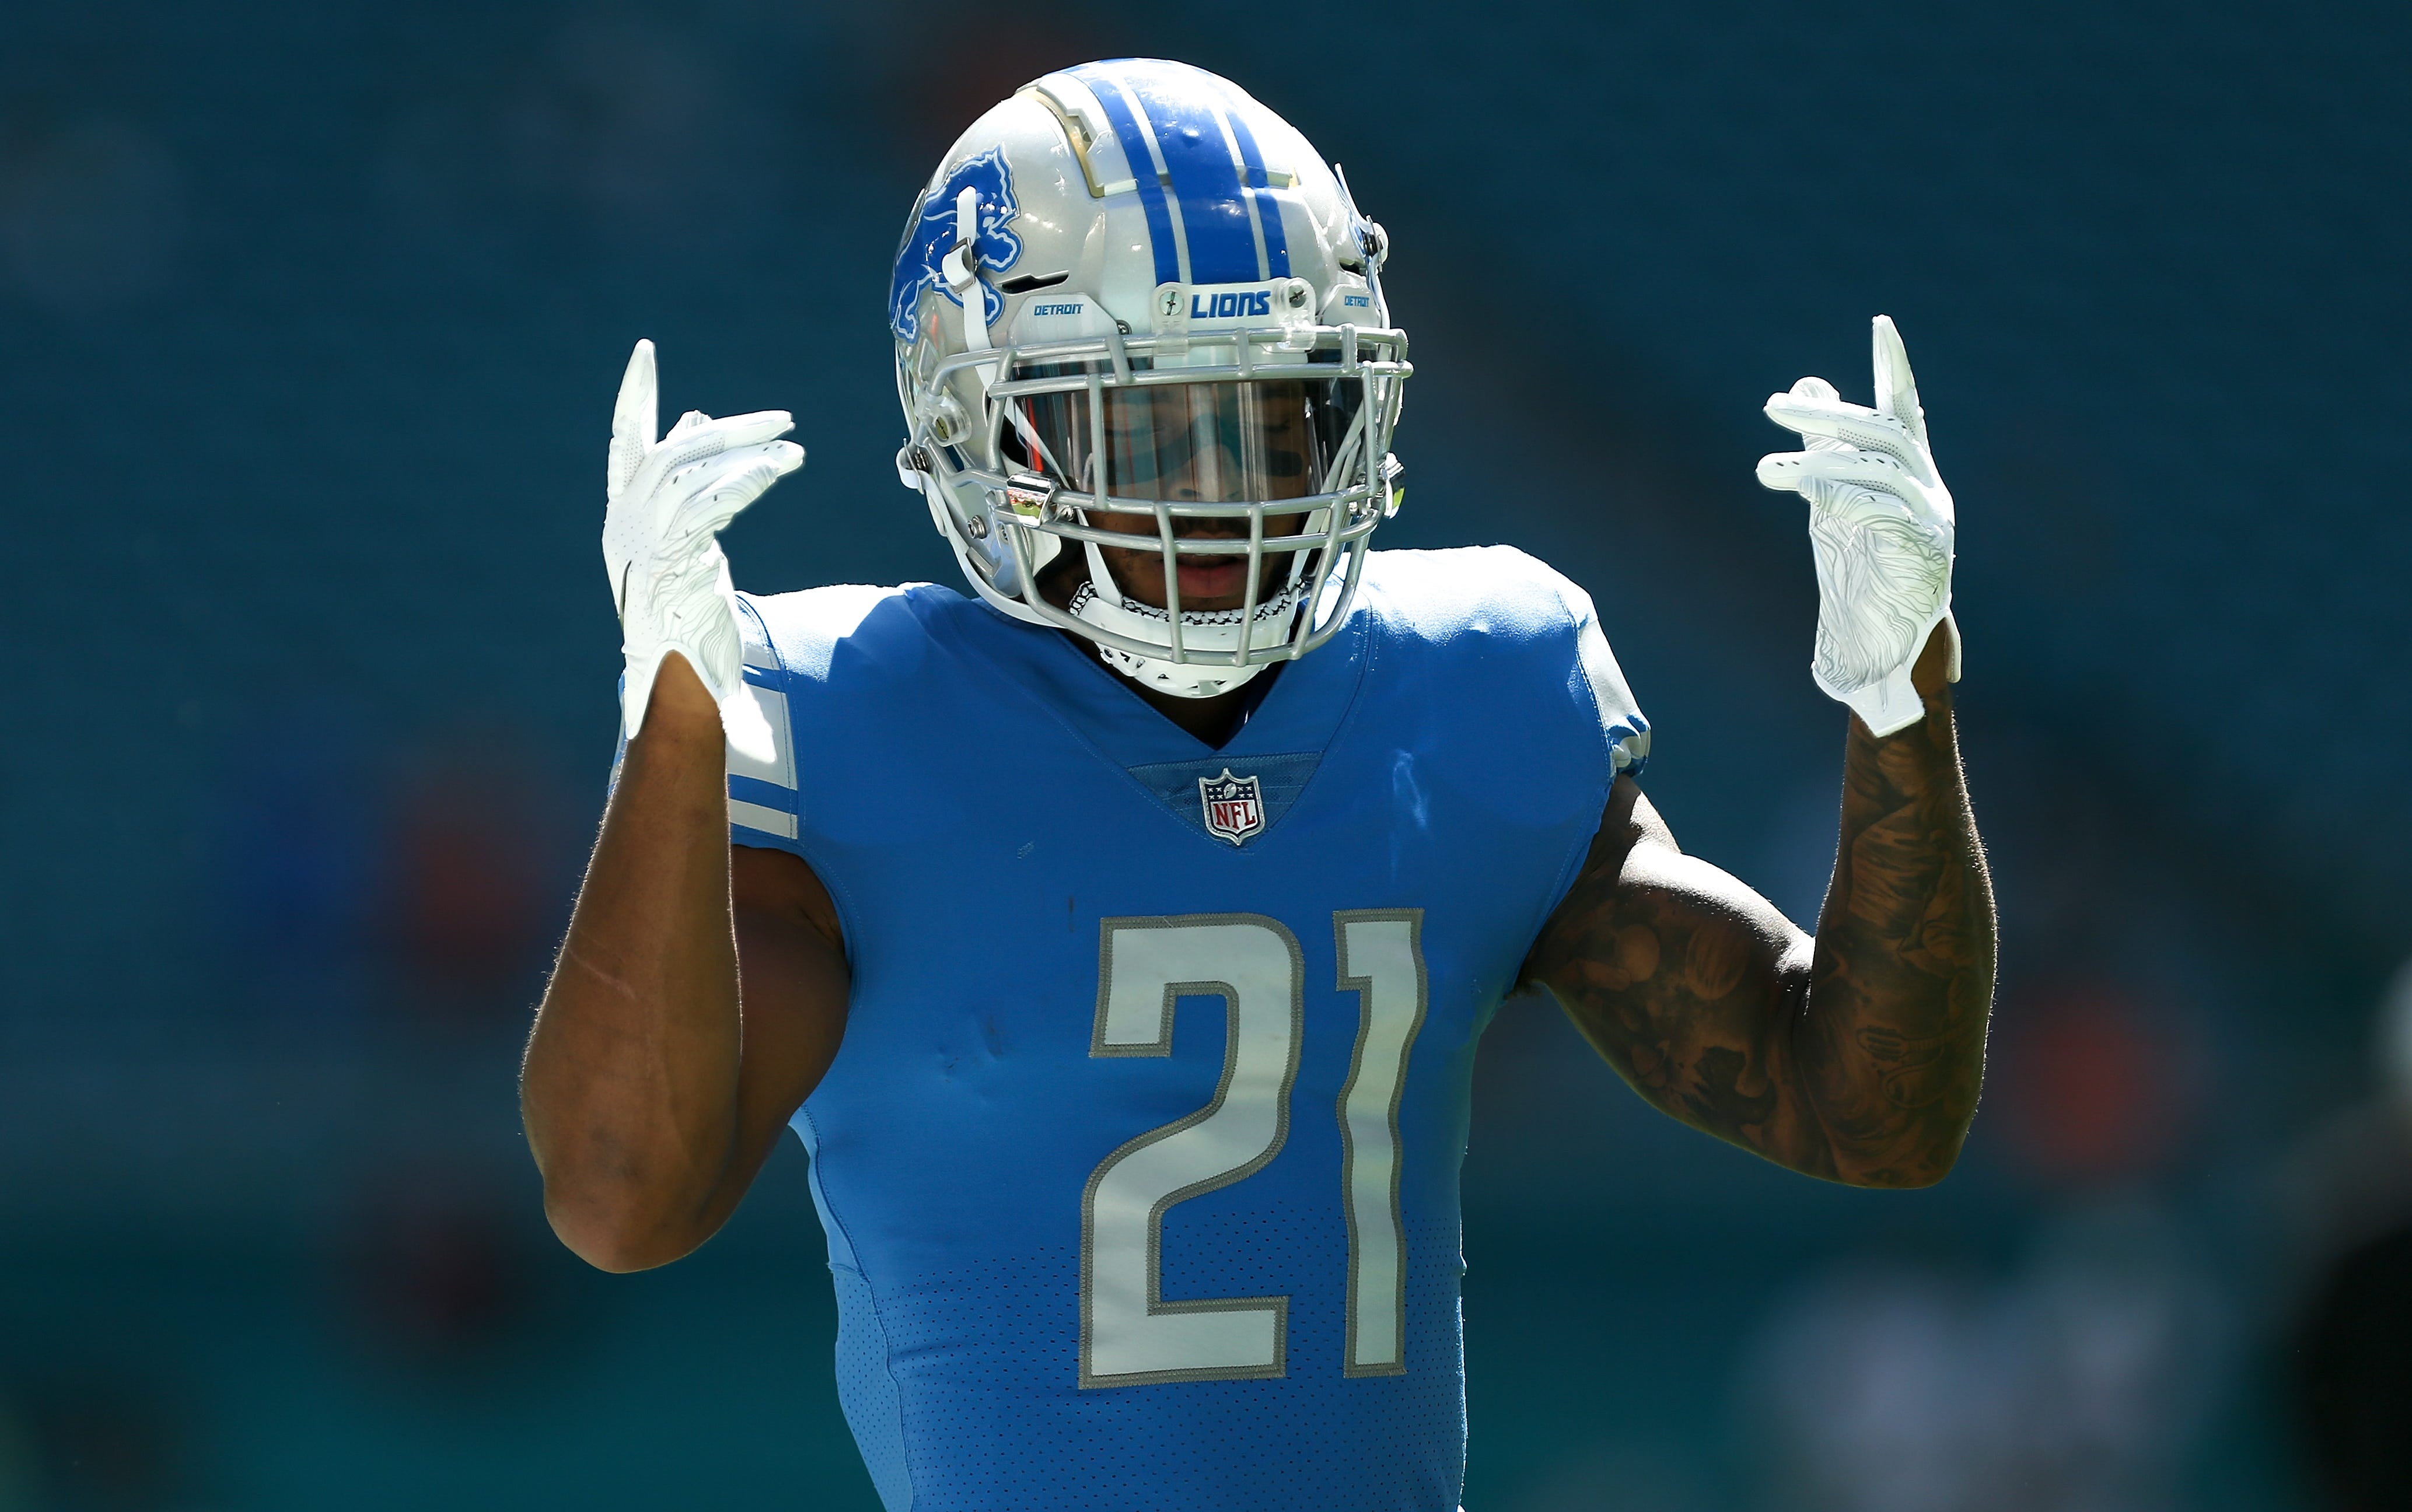 Lions running back Ameer Abdullah reacts prior to the Lions' 32-21 win on Sunday, Oct. 21, 2018, in Miami Gardens, Fla.